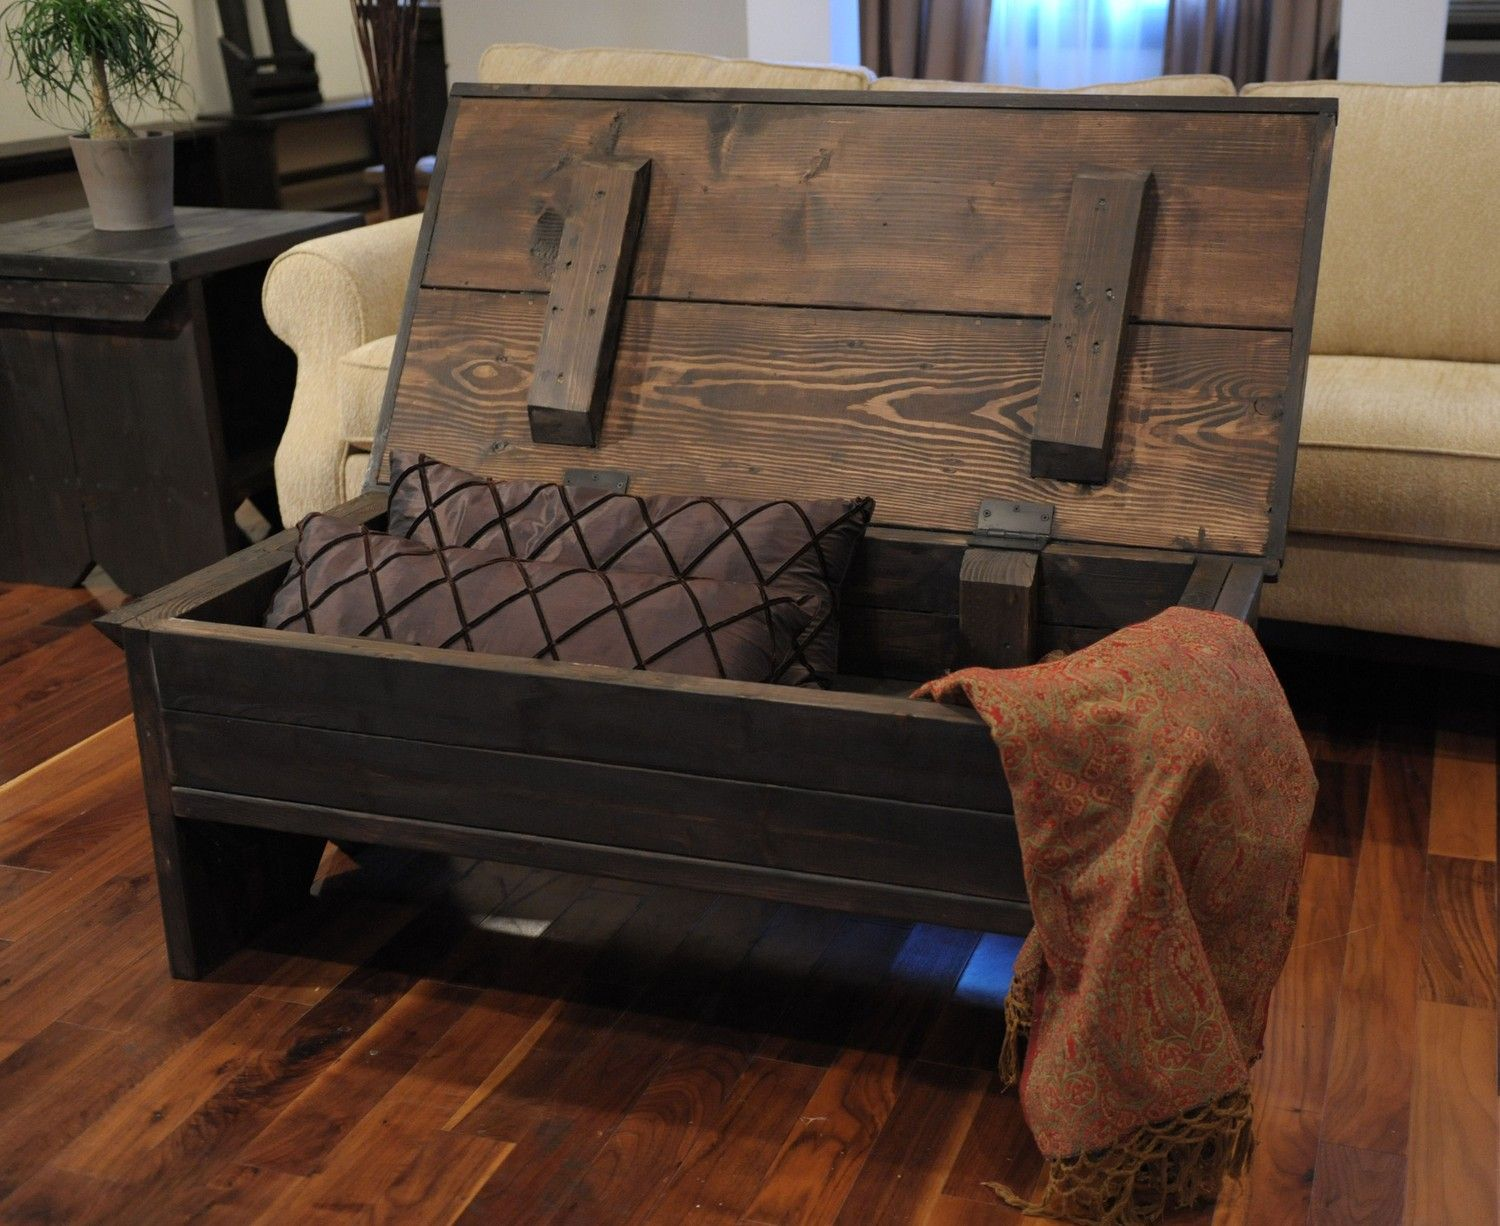 Cute Coffee Table Storage Homemade Coffee Tables Furniture Reclaimed Coffee Table [ 1226 x 1500 Pixel ]